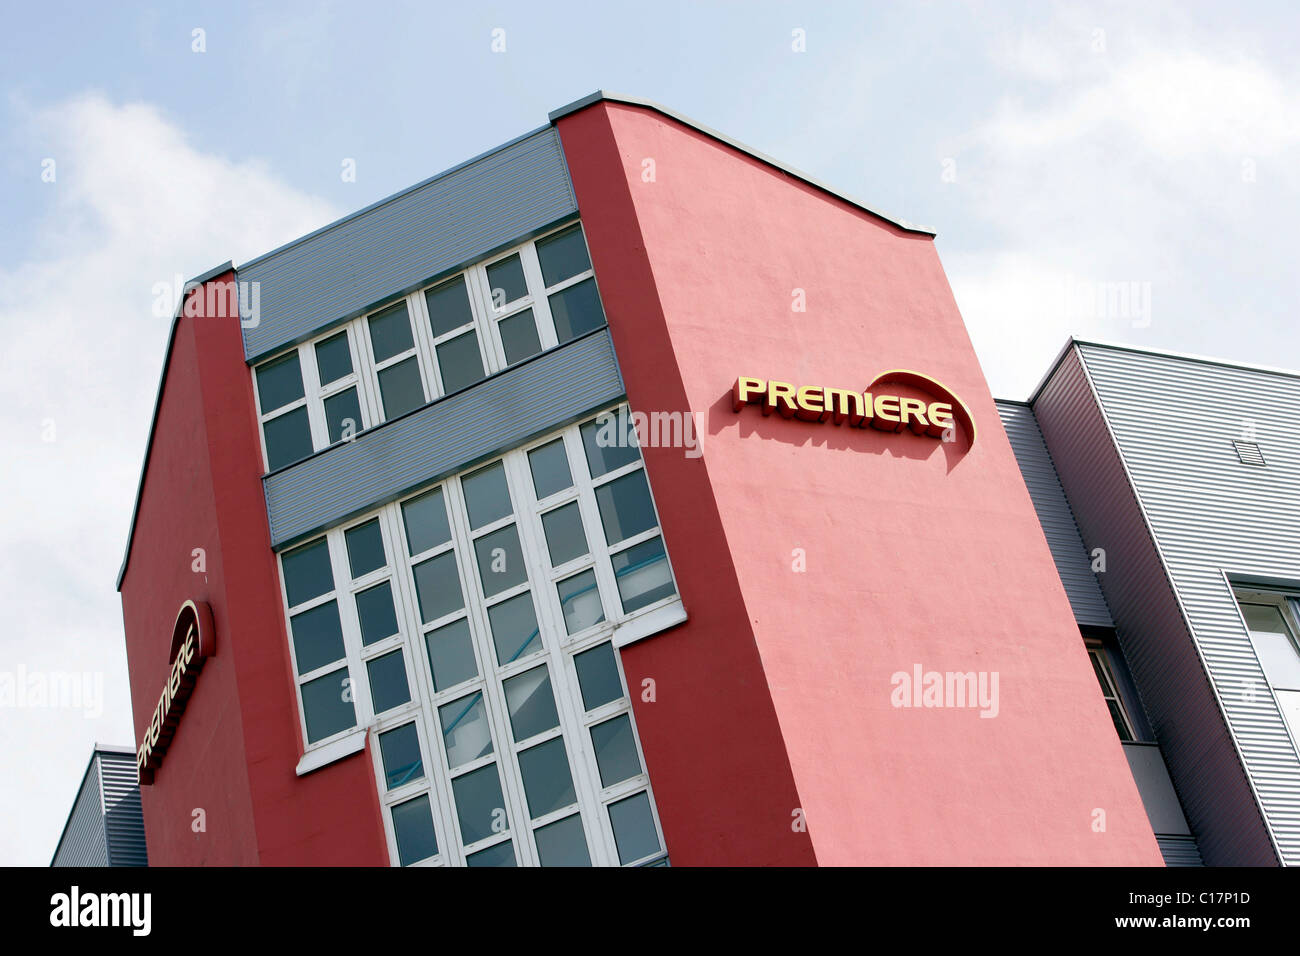 Premiere World Company Headquarters on Medienallee Street in Unterfoehring near Munich, Bavaria, Germany, Europe - Stock Image